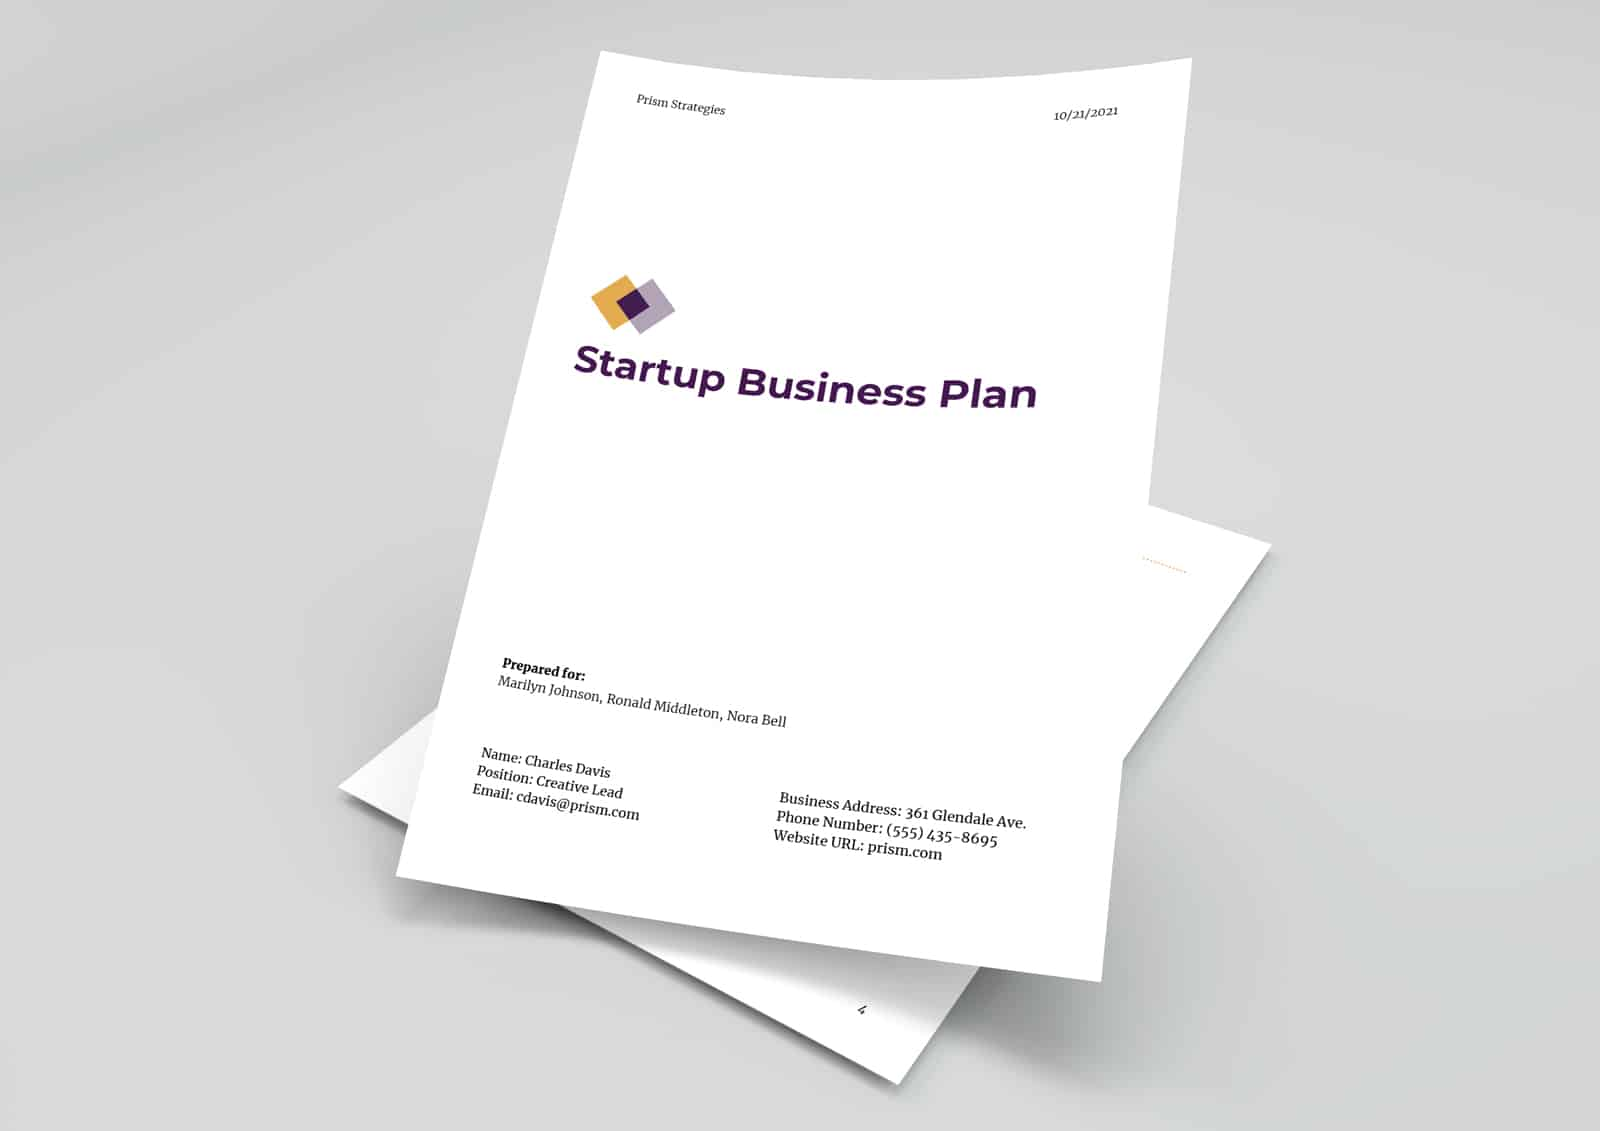 Startup business plan template preview